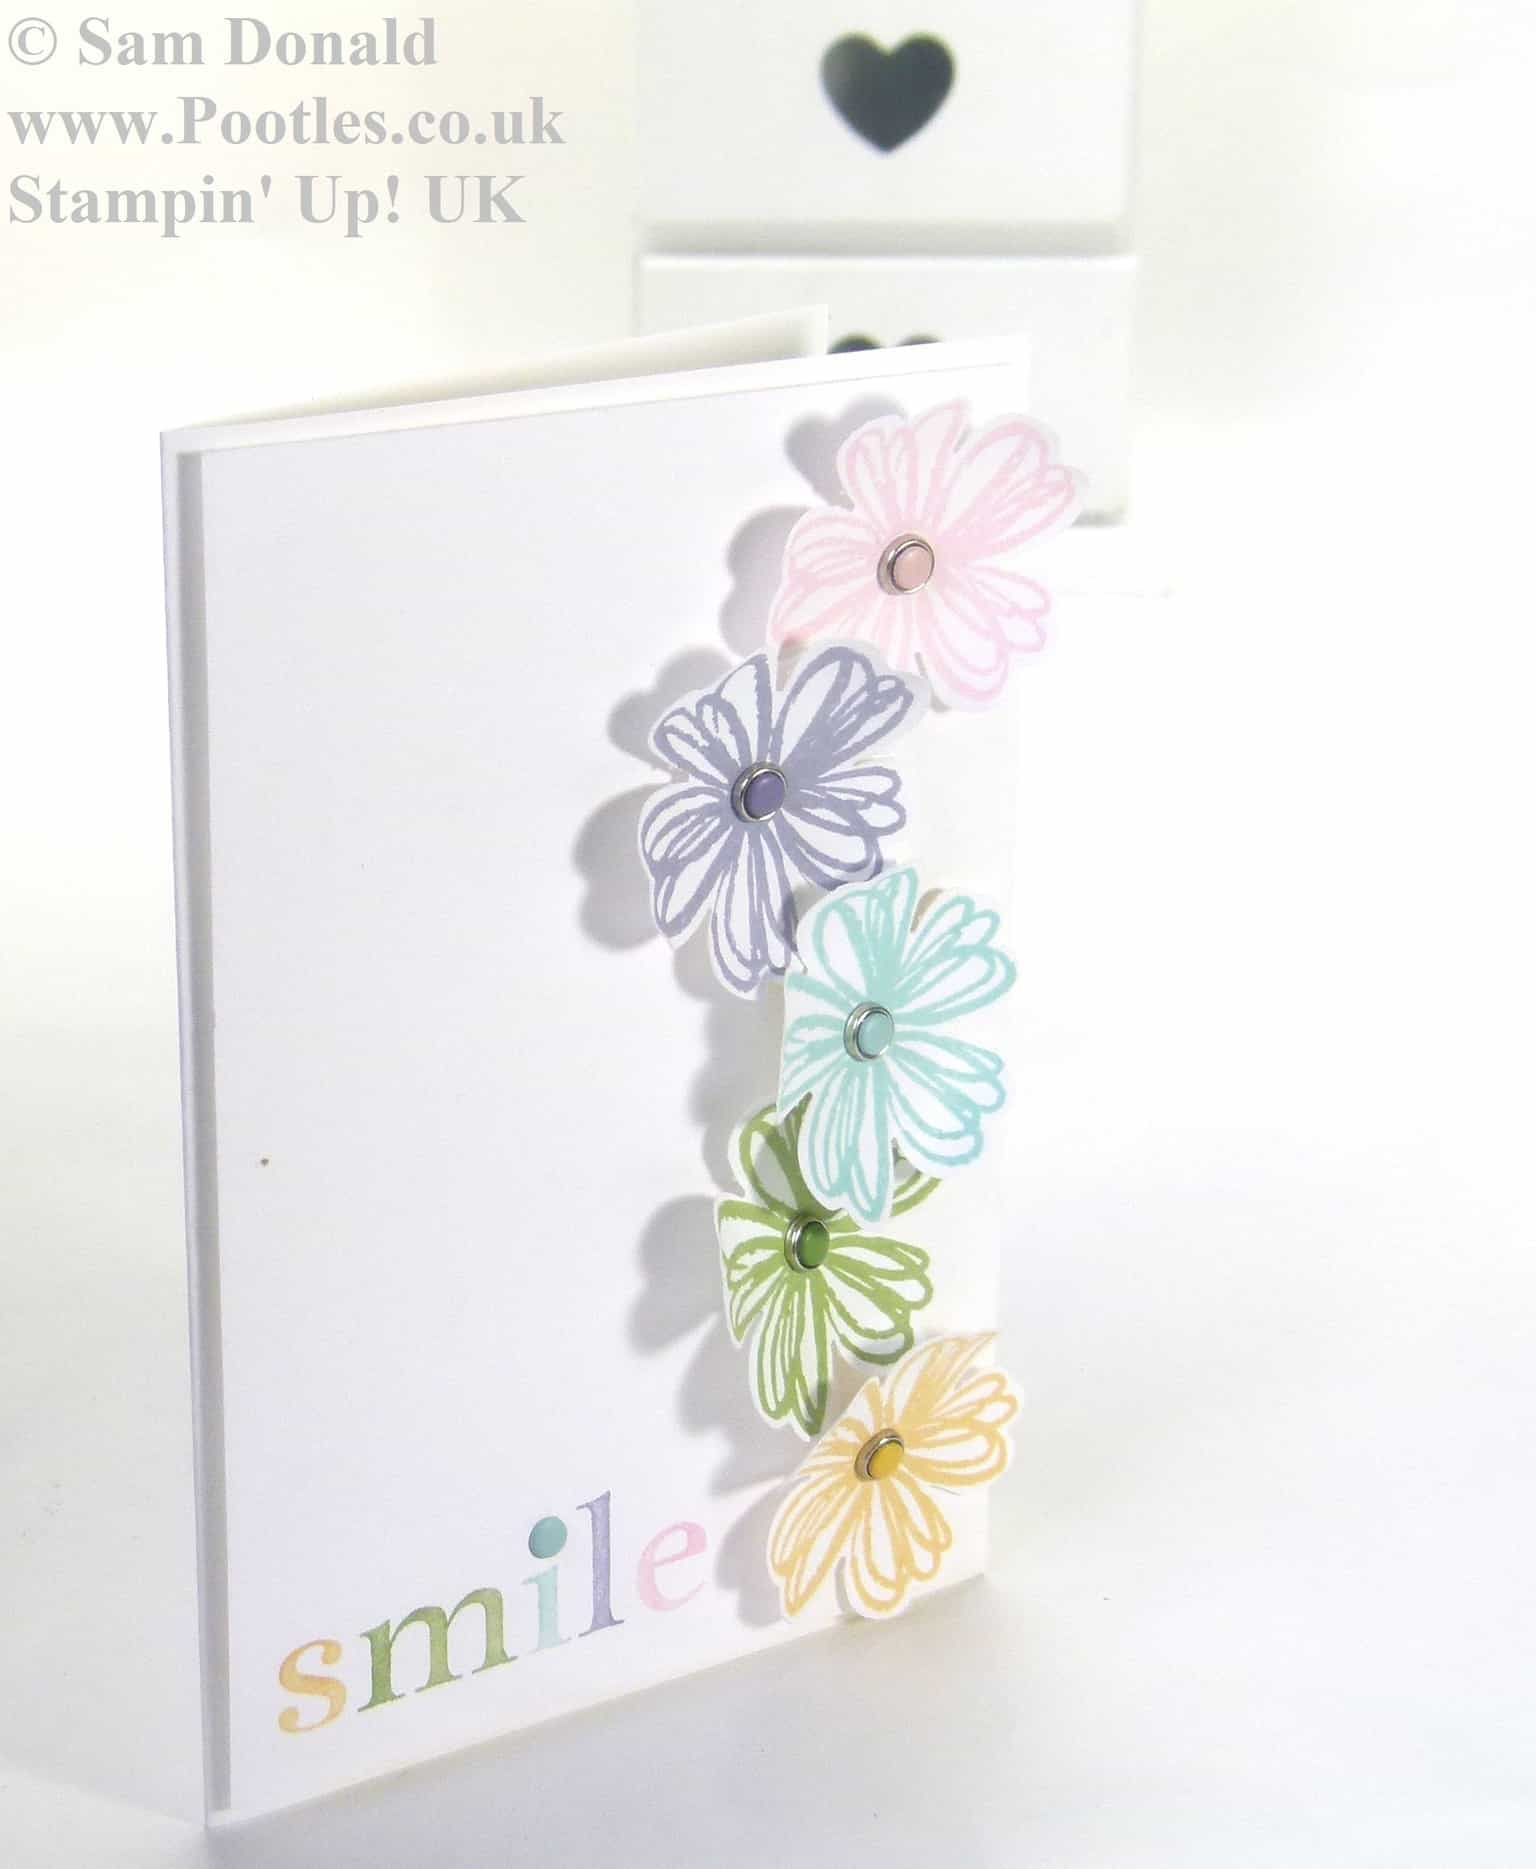 POOTLES Stampin Up UK Subtle Smile 3